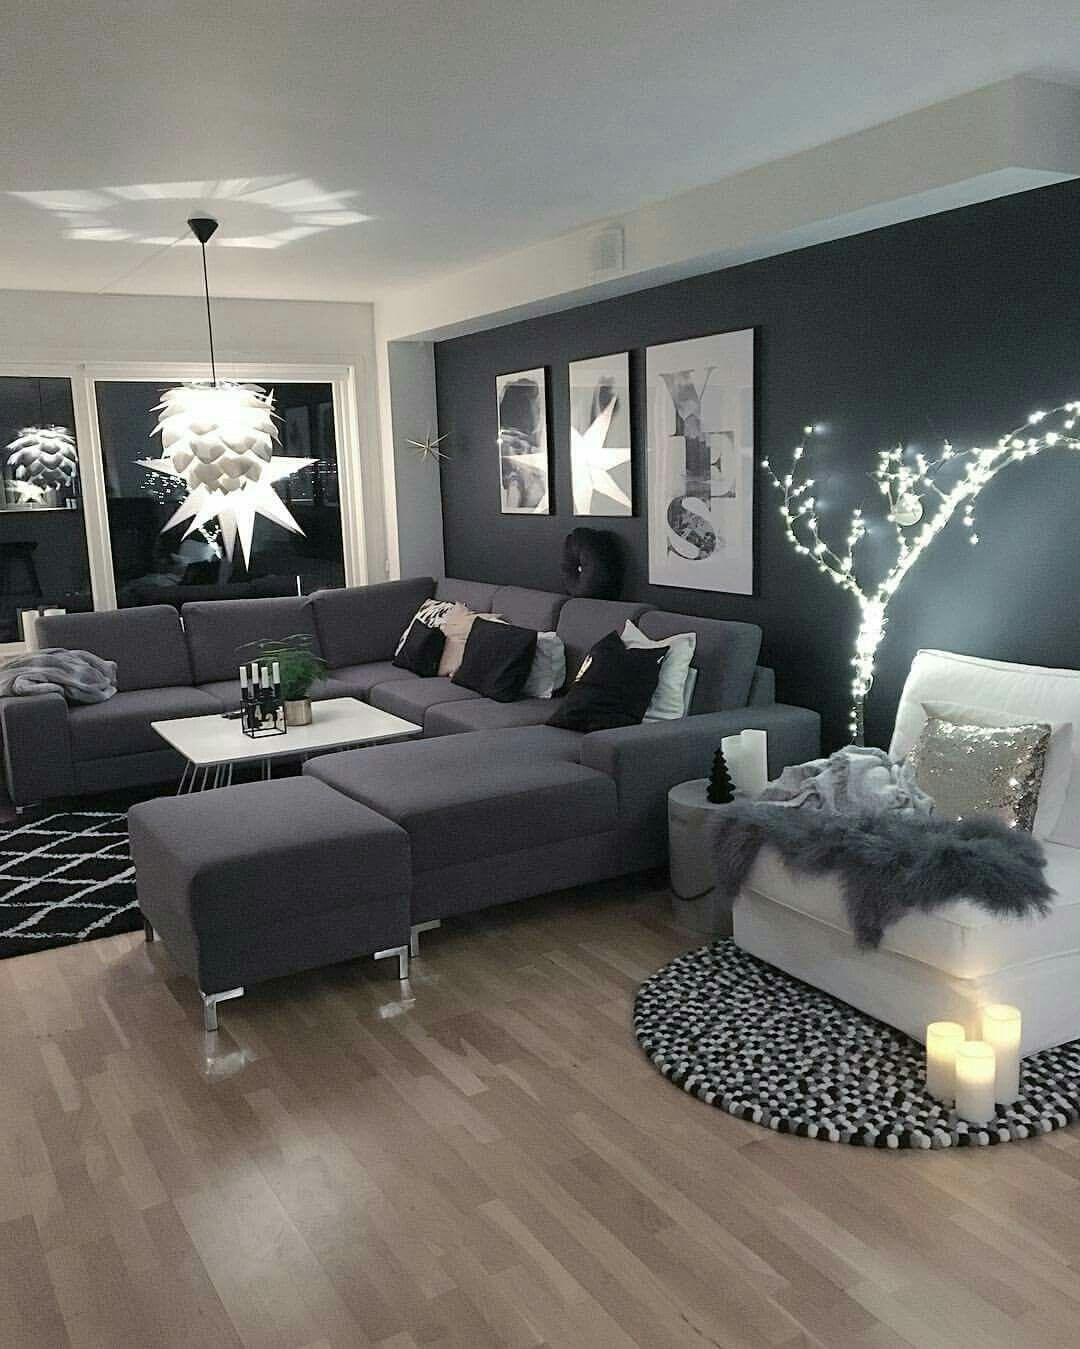 Pinterest thephotown magazine lifestyle lille salon for Grey black and white living room